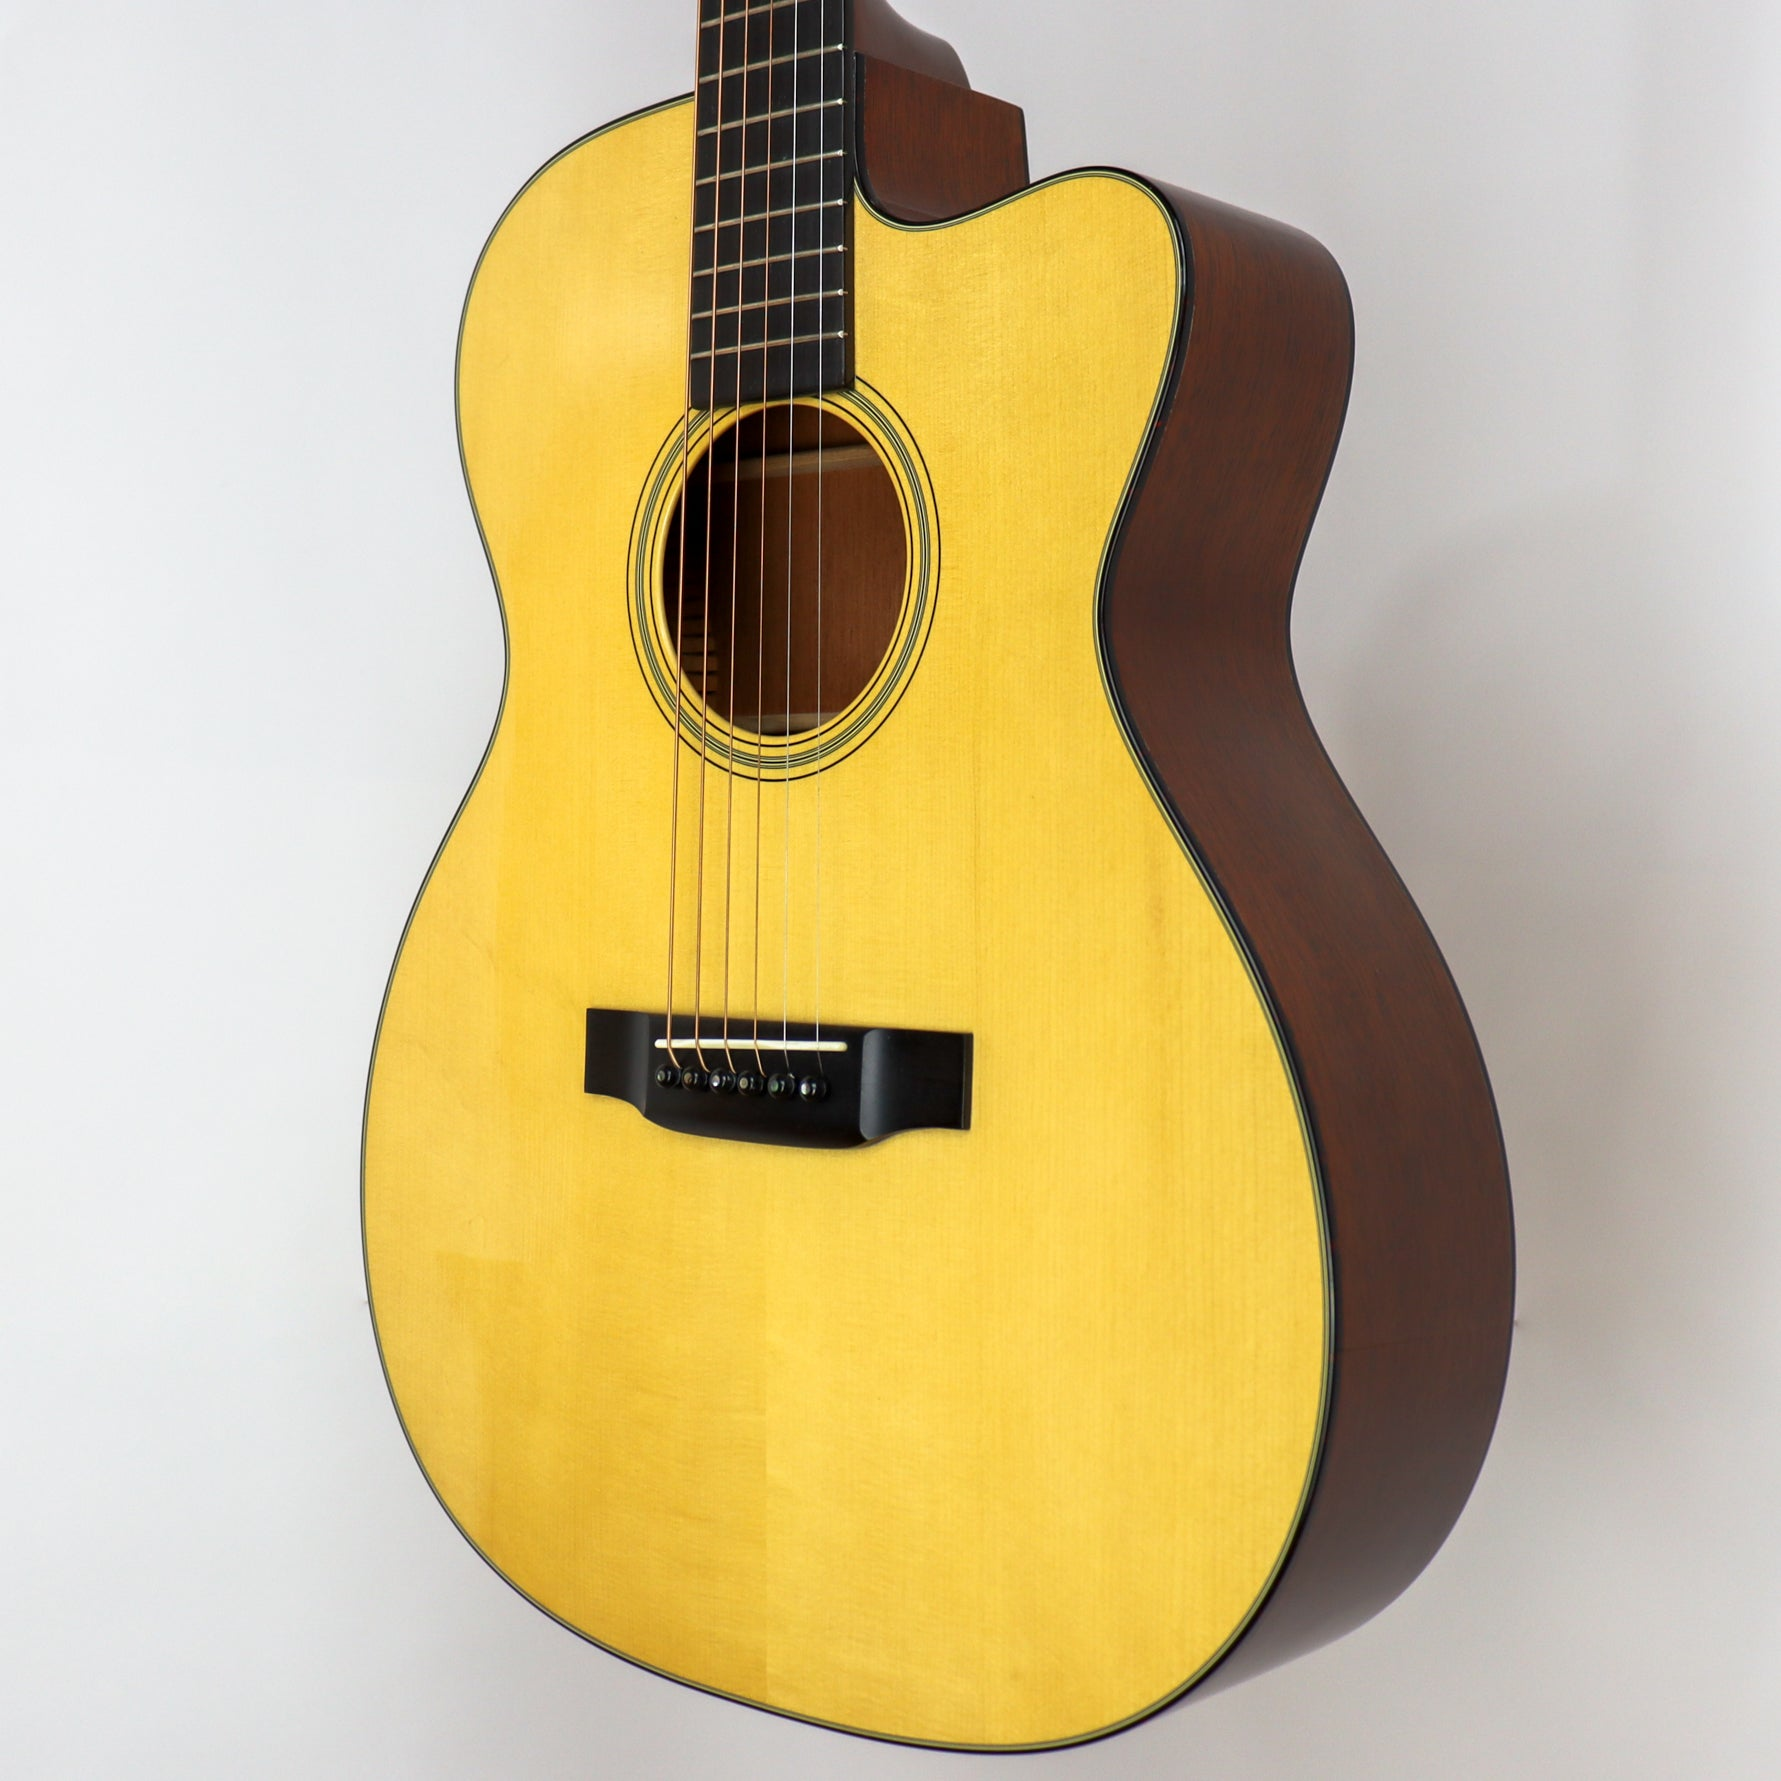 Martin 2002 OMC-18V Laurence Juber Signature #98 out of 133